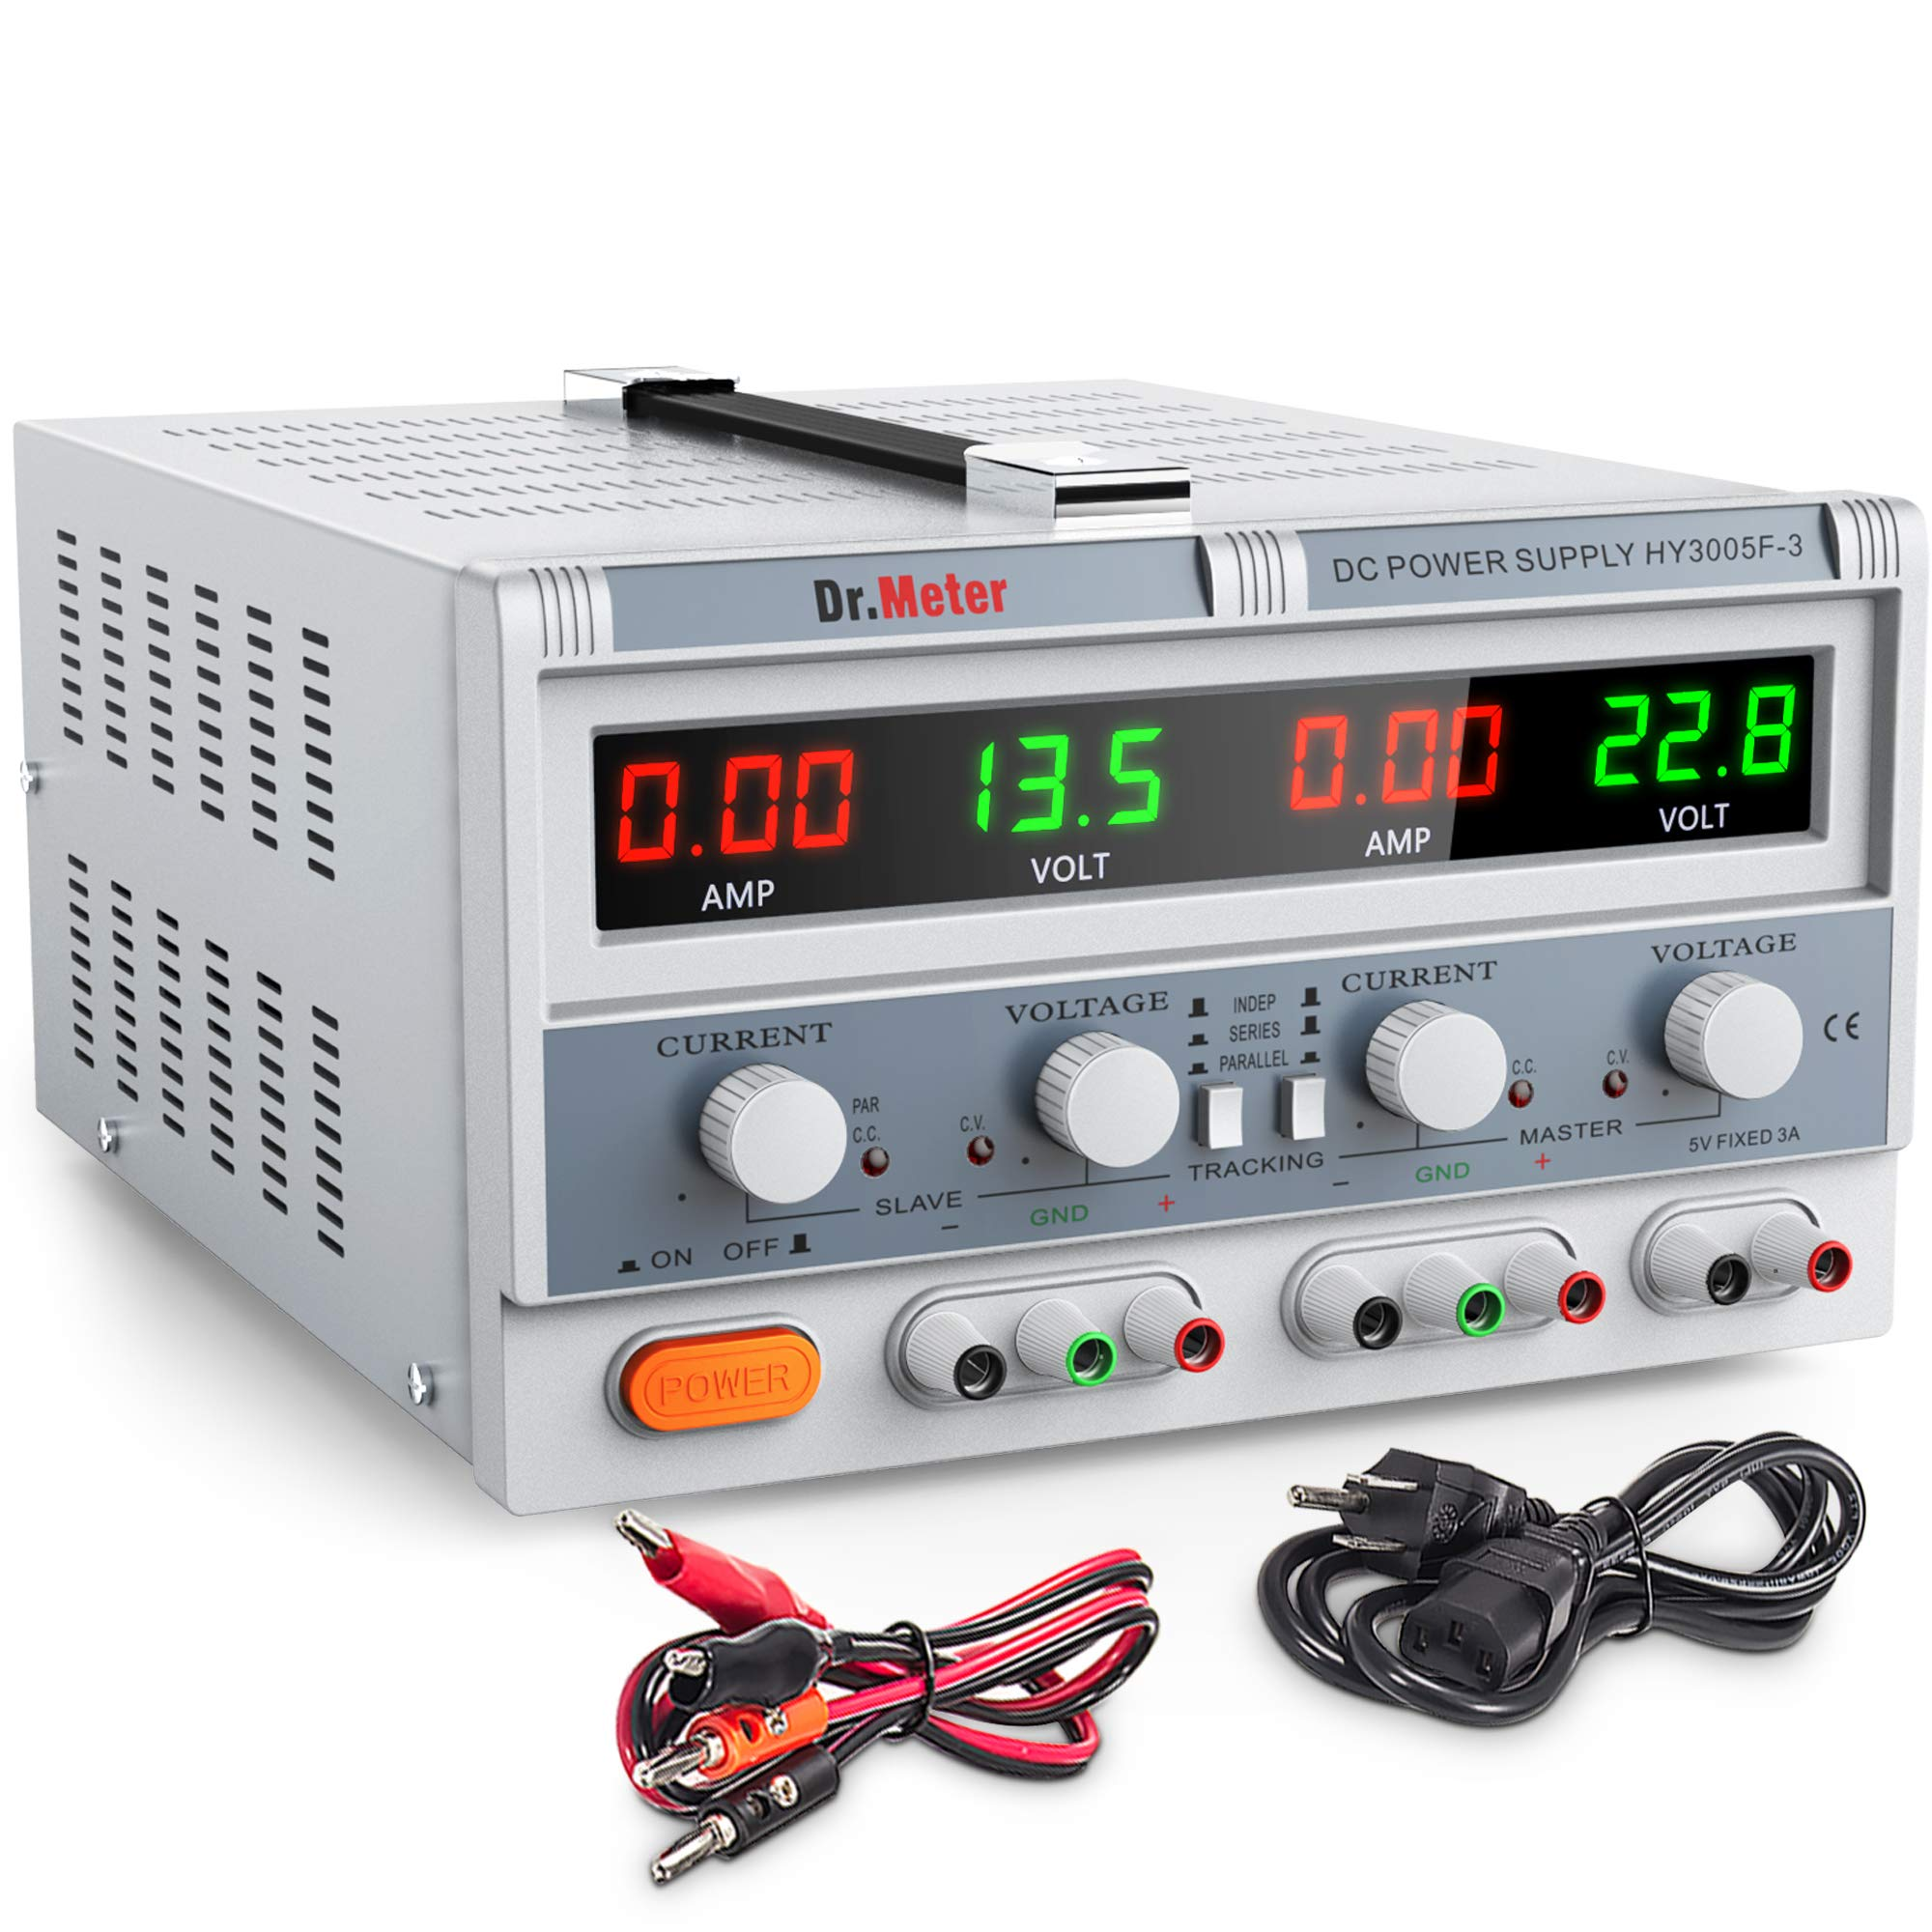 Best Rated In Lab Power Supplies Helpful Customer Reviews 14w Stereo Audio Amplifier Electronicslab Drmeter Hy3005f 3 Triple Linear Dc Supply 30v 5 Amp